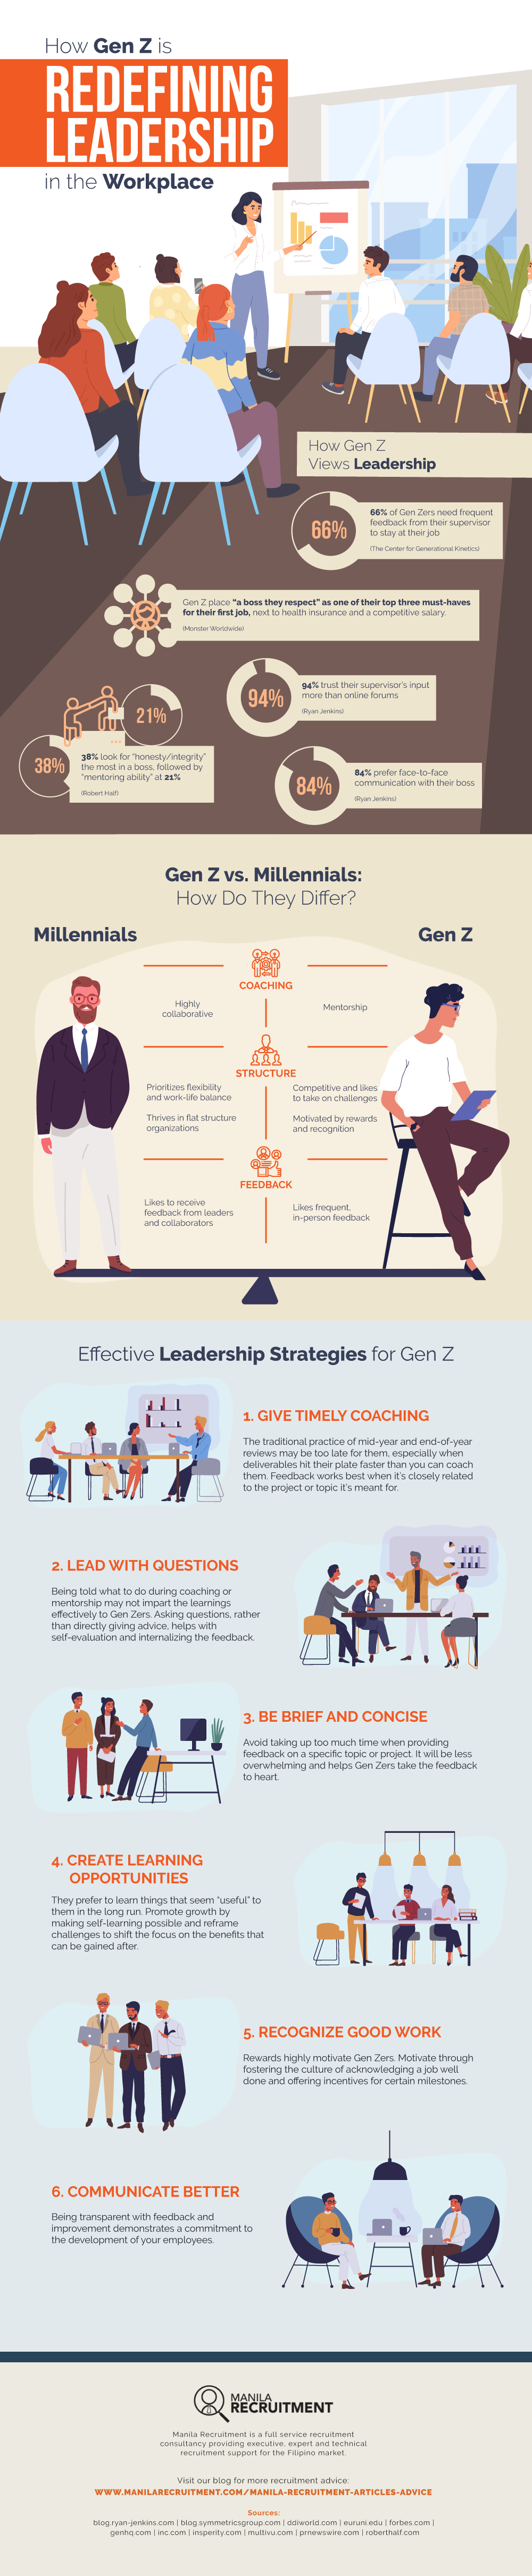 How Gen Z is Redefining Leadership in the Workplace